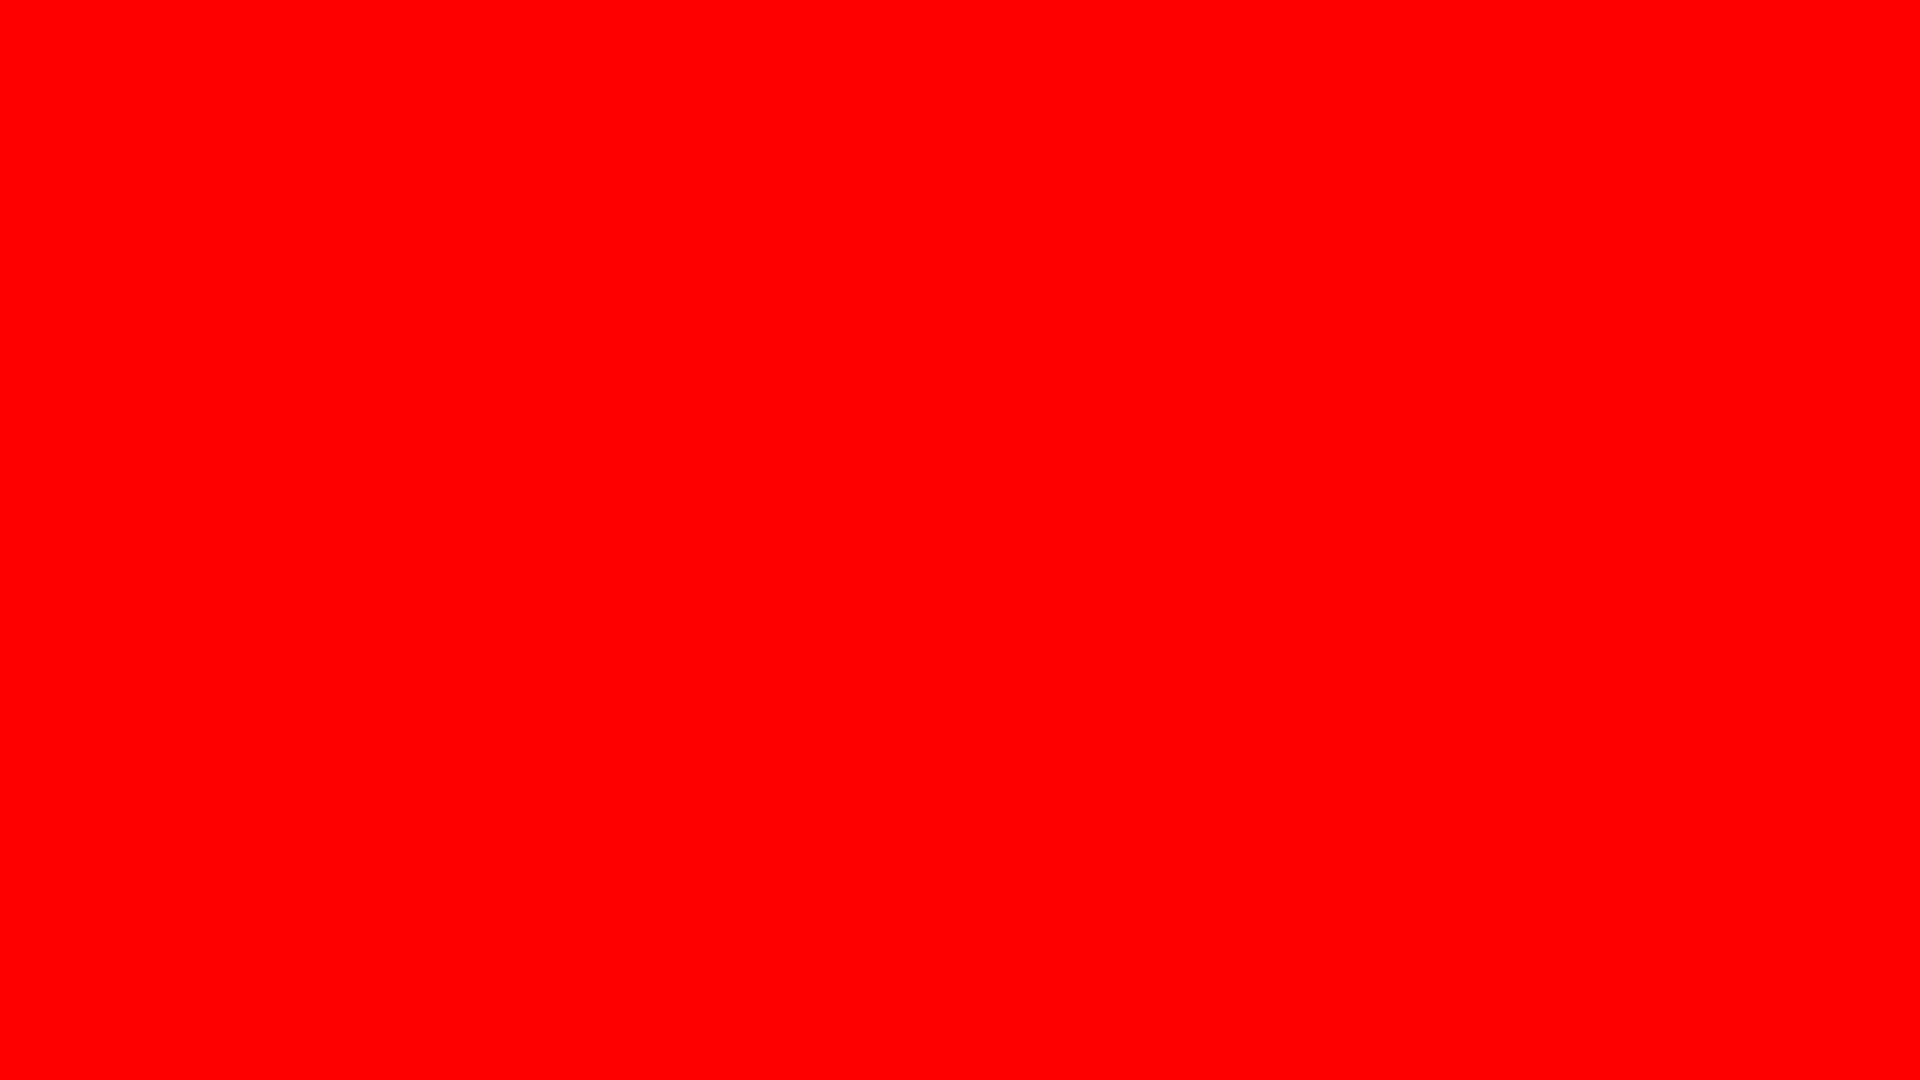 Solid Red High Definition